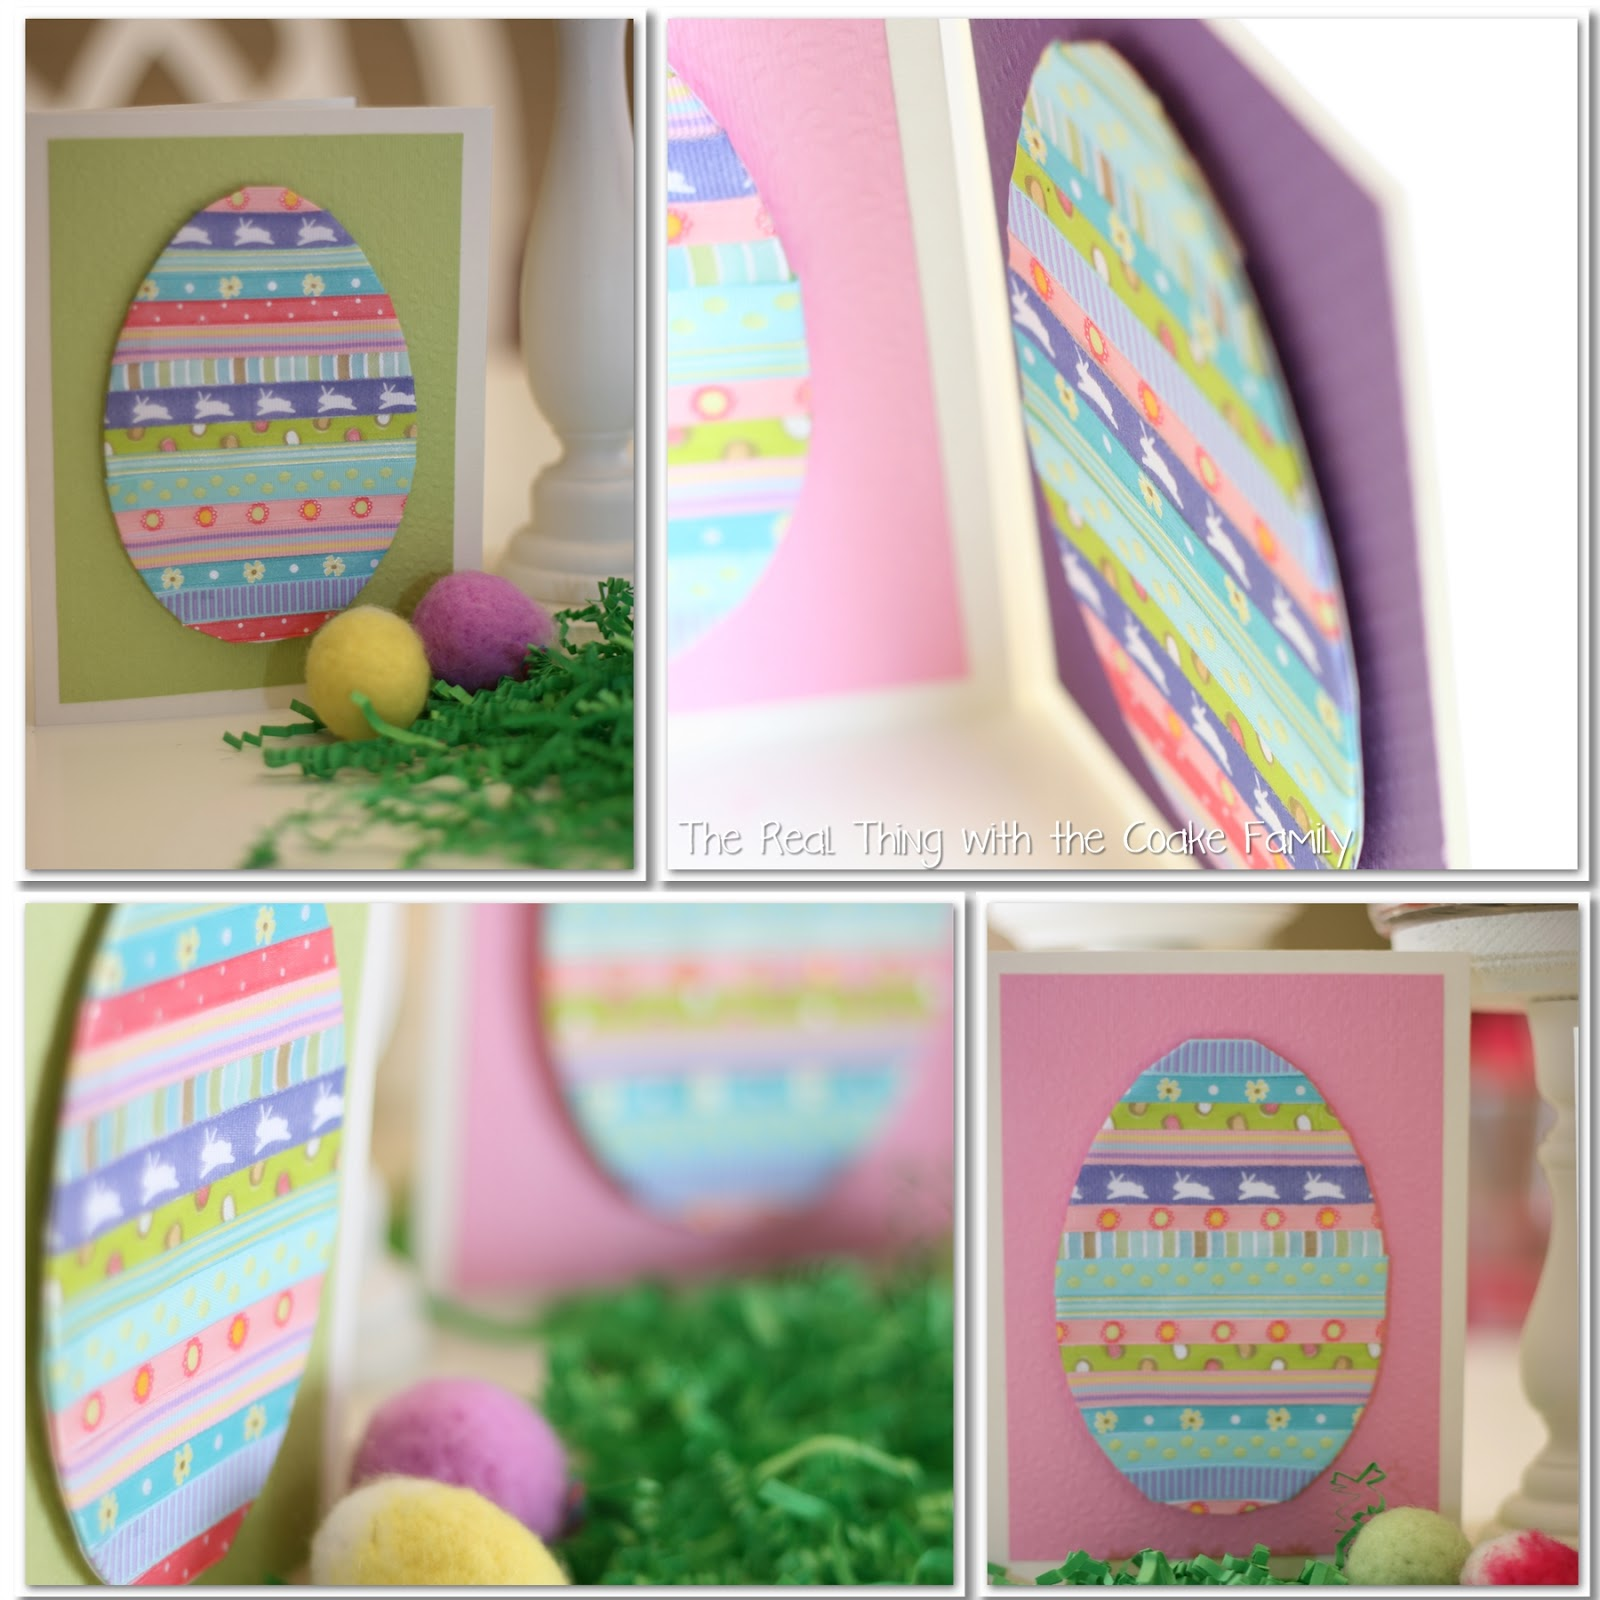 Handmade cards simple easter card babysitting academy homemade cards thecheapjerseys Image collections